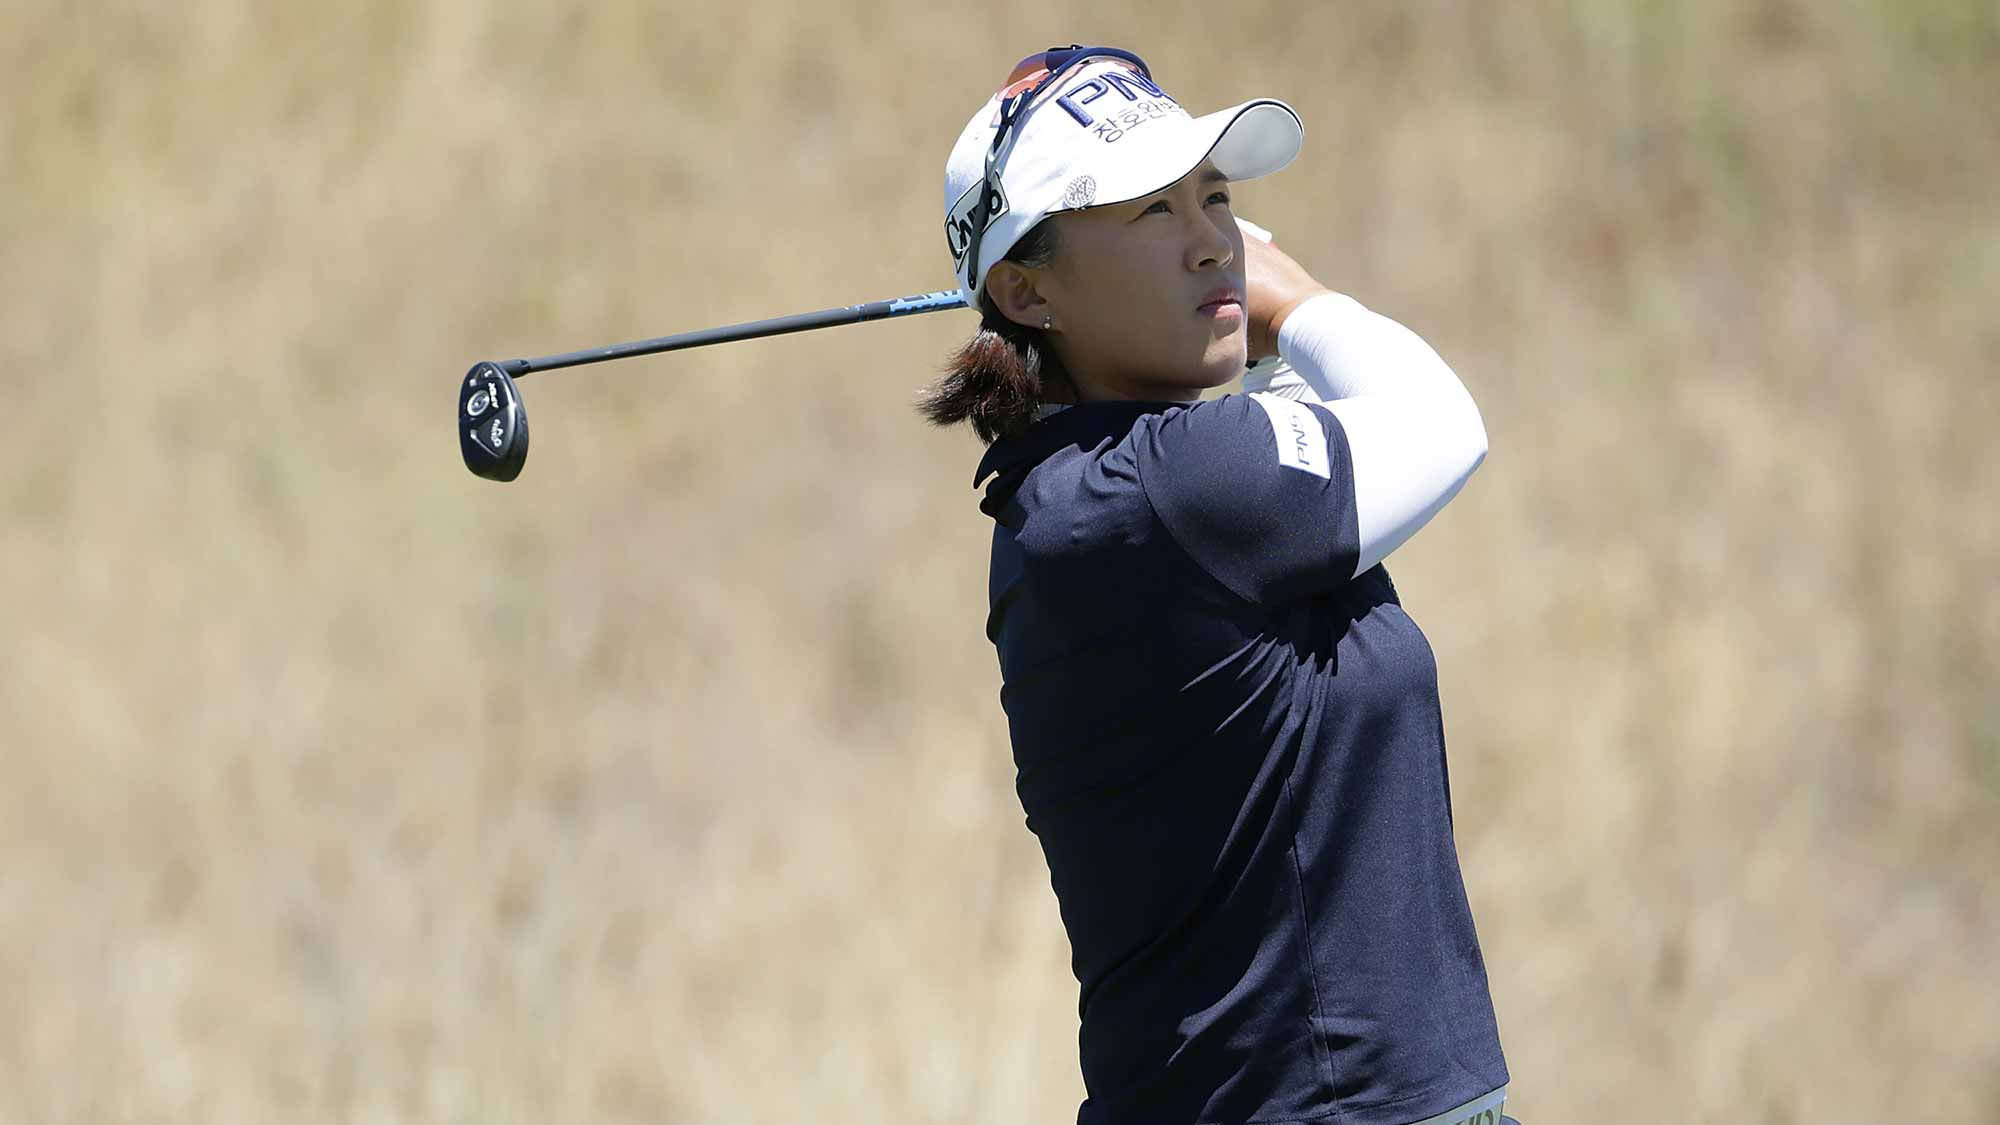 Amy Yang on the sixth hole during the third round of the U.S. Women's Open at the CordeValle Golf Club